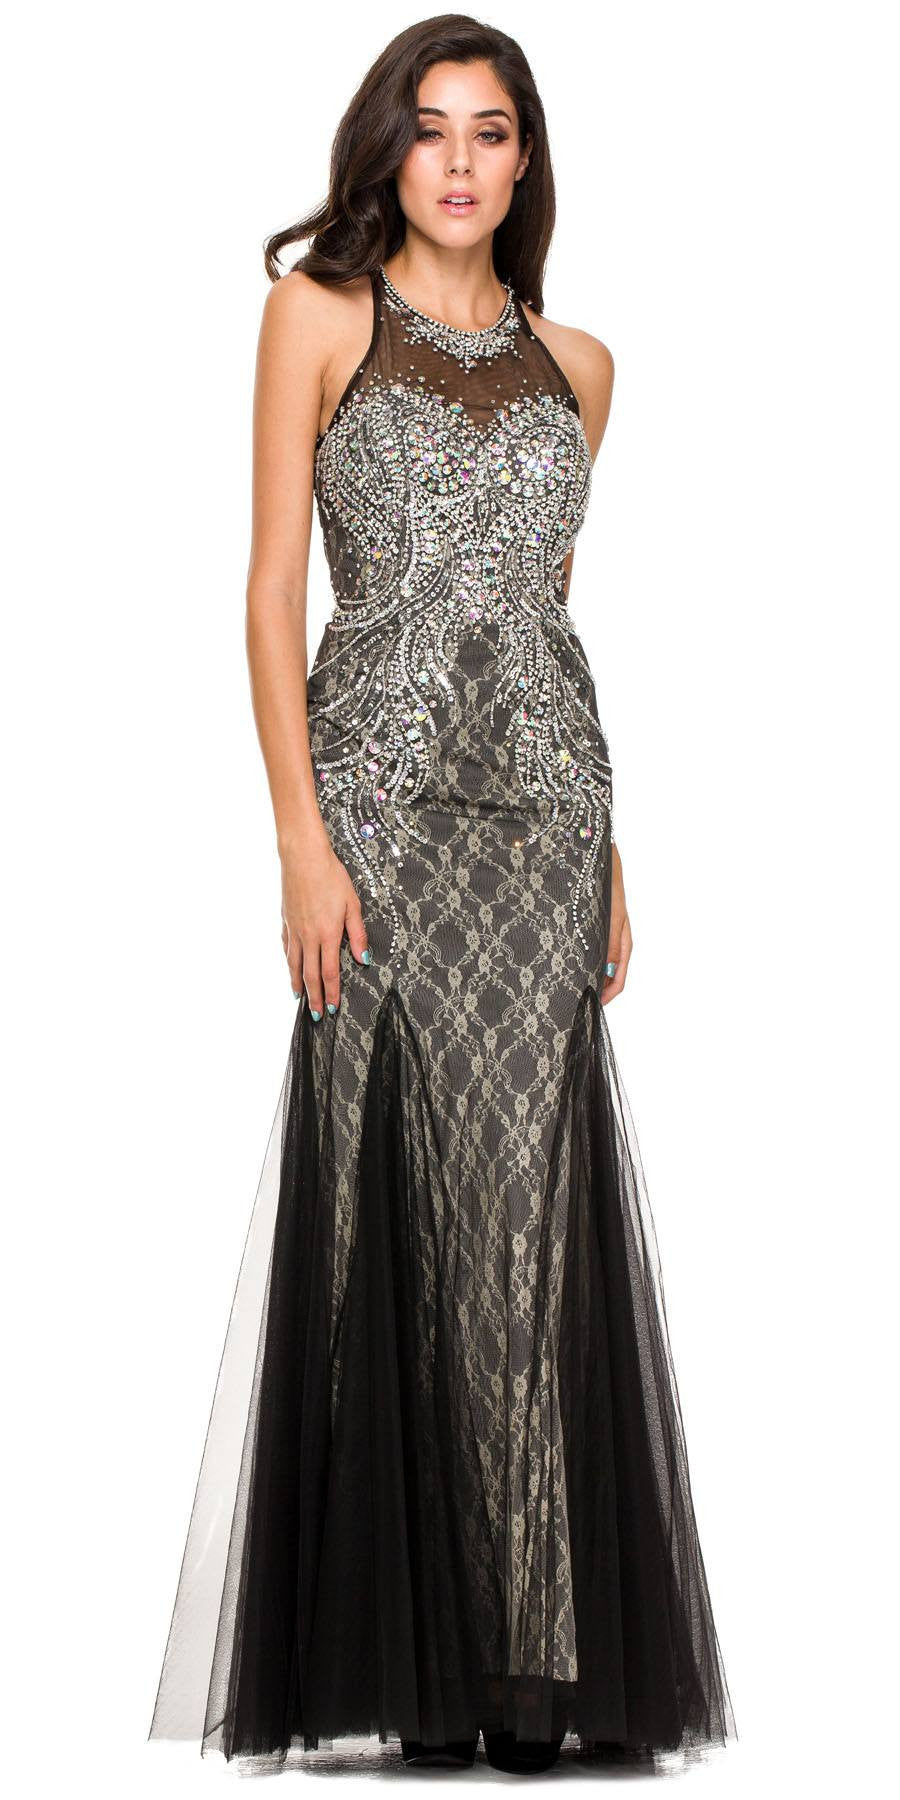 Long Formal Fish Tail Gown Black Mesh/Tulle Rhinestones